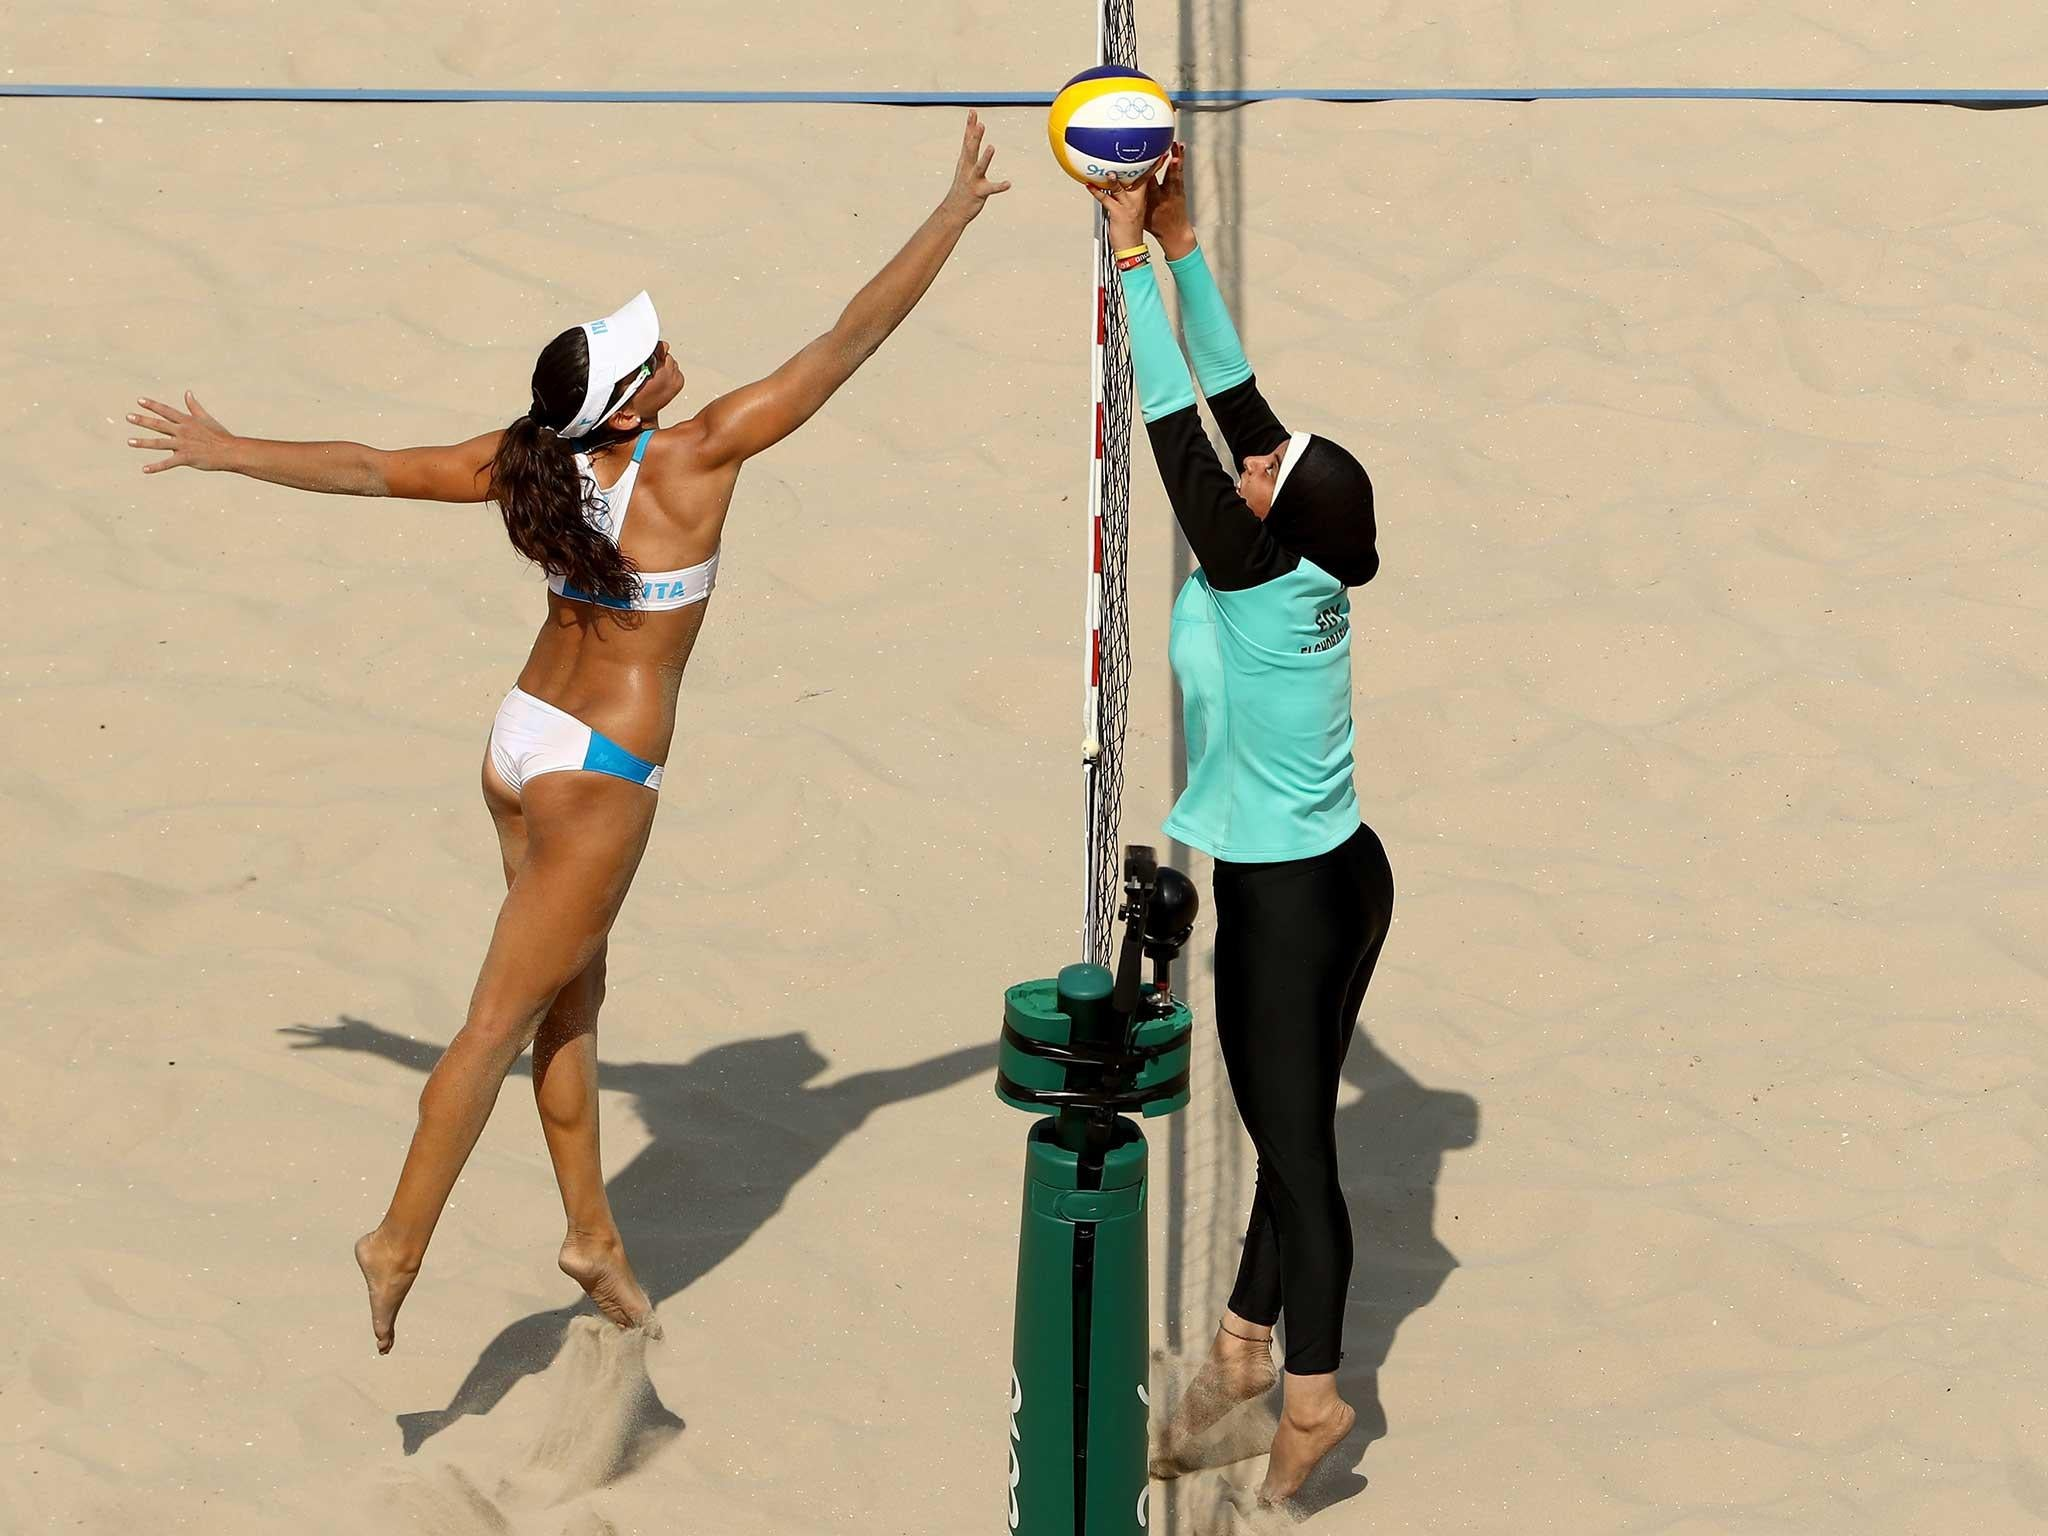 Beach volleyball players' contrasting attire sparks debate